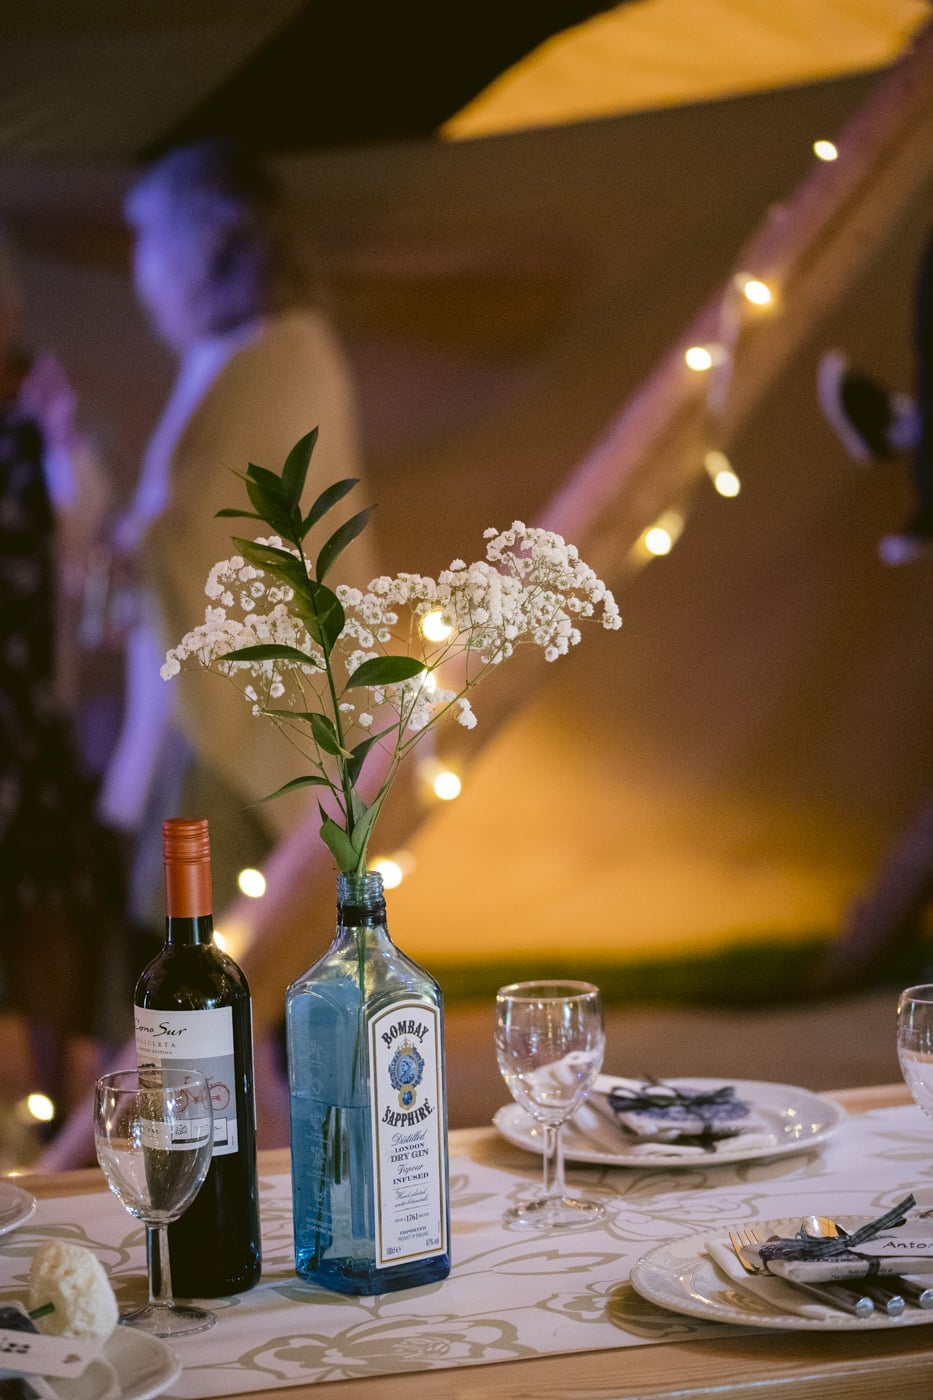 Table Decorated with Flower in Bottle